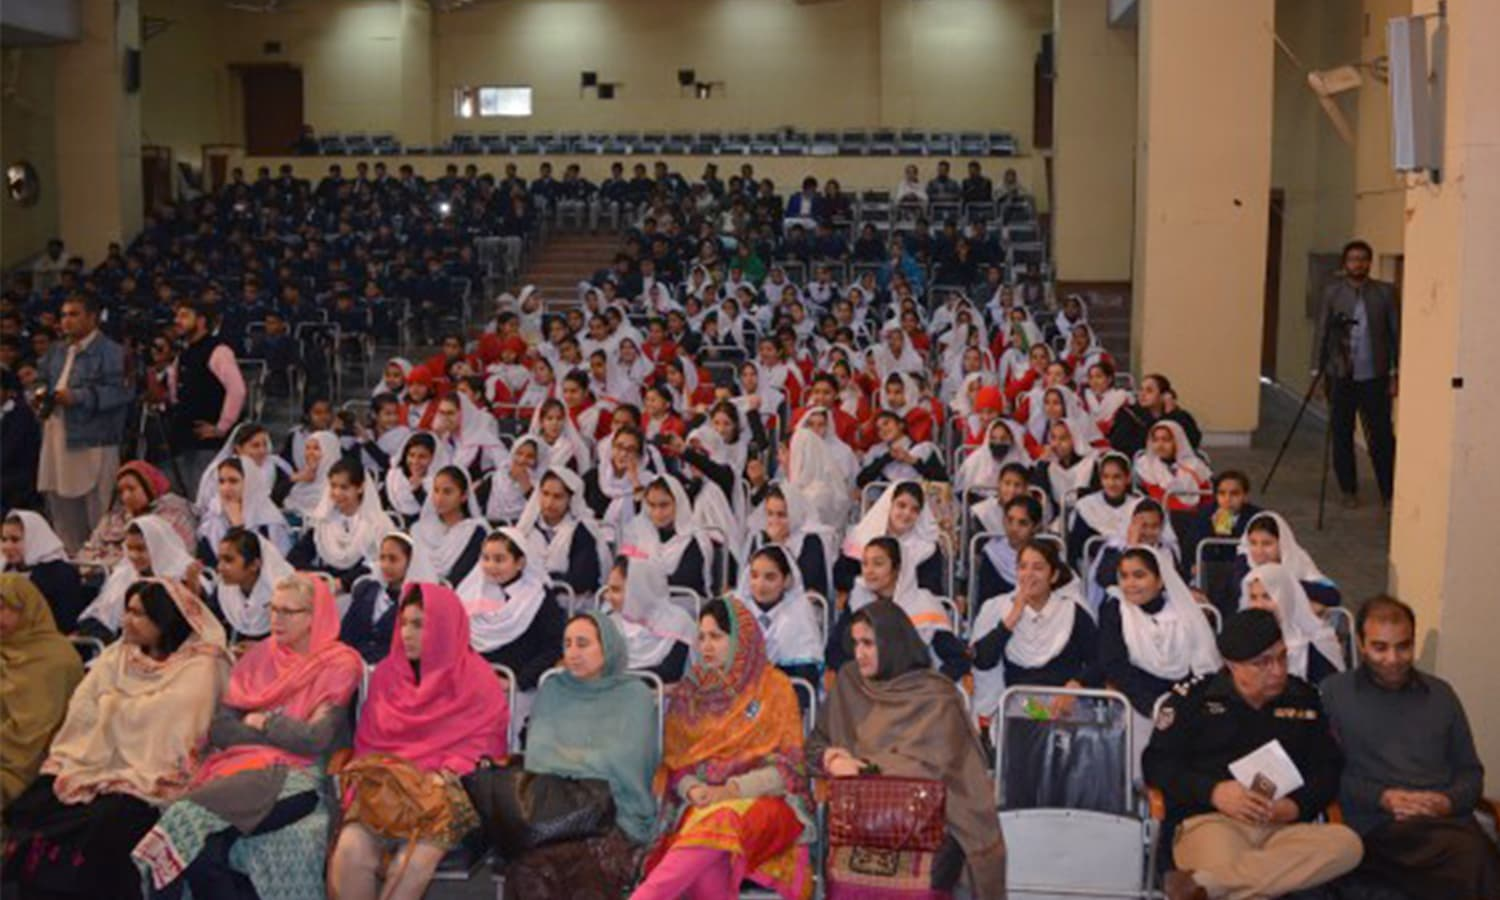 Parents and teachers have been enthusiastic about the interactive theatre plays, which aim to educate children about a range of social issues. Photo by Riaz Ghafoor